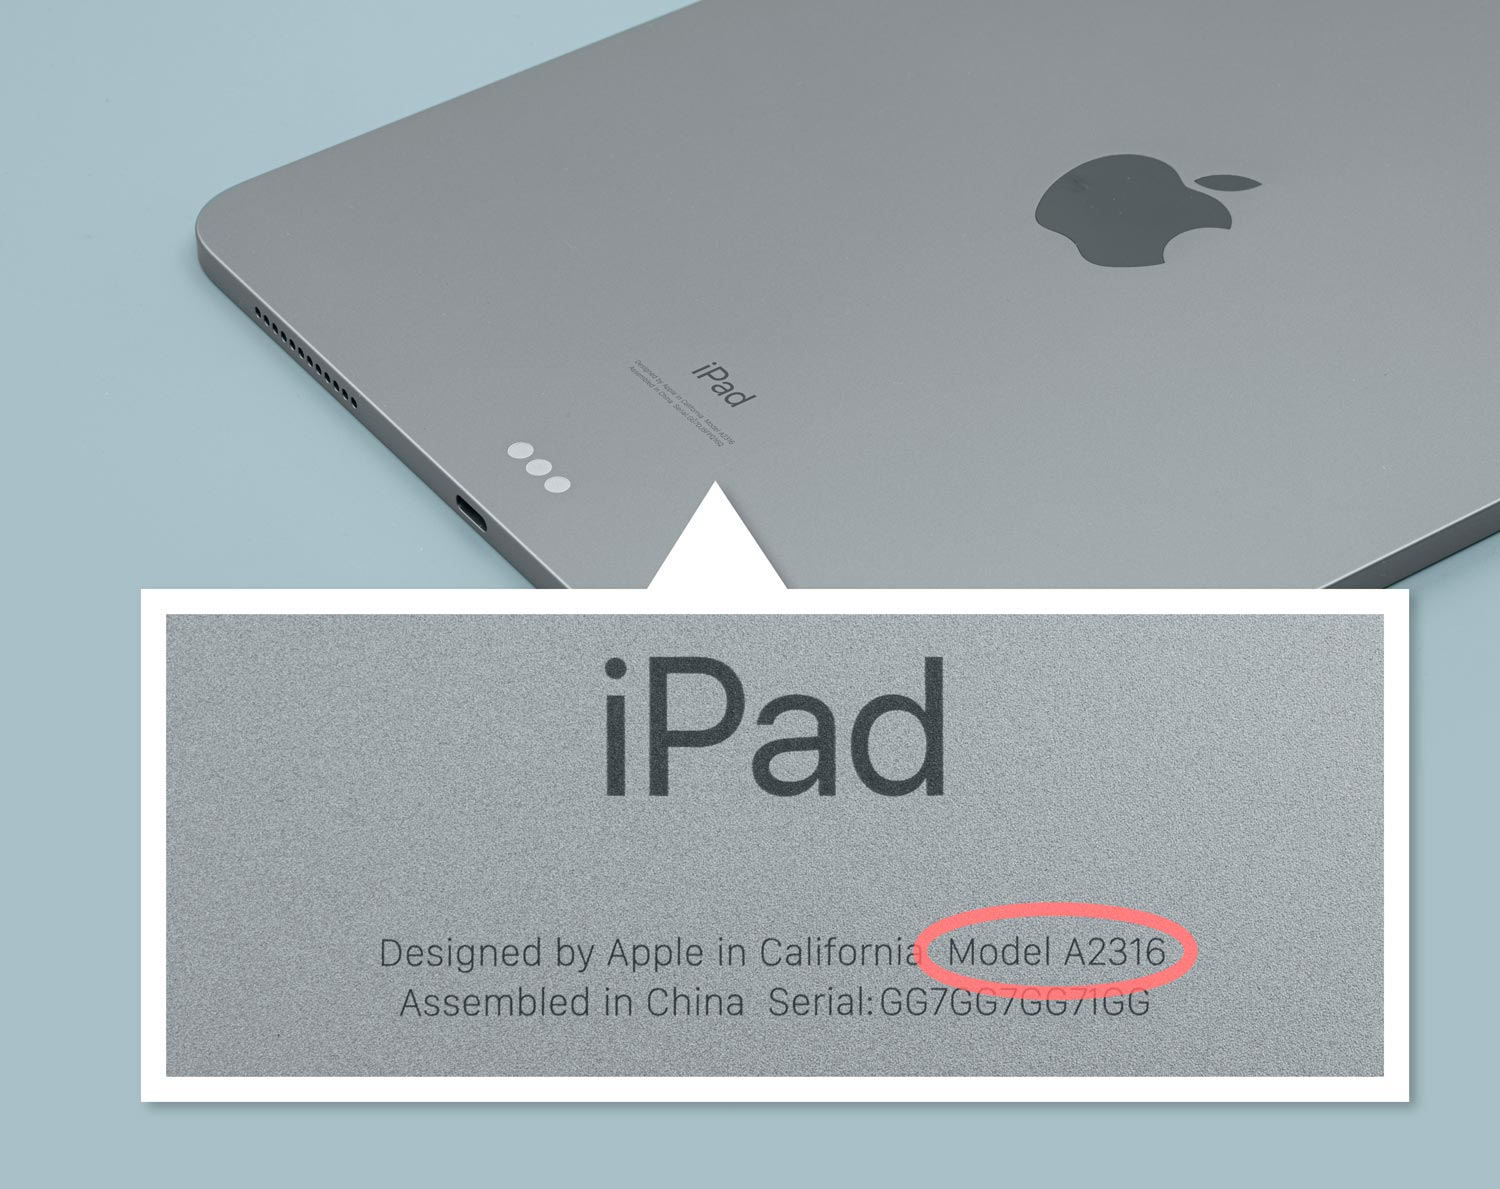 Flip your iPad over, and find the 'iPad' label on the bottom.